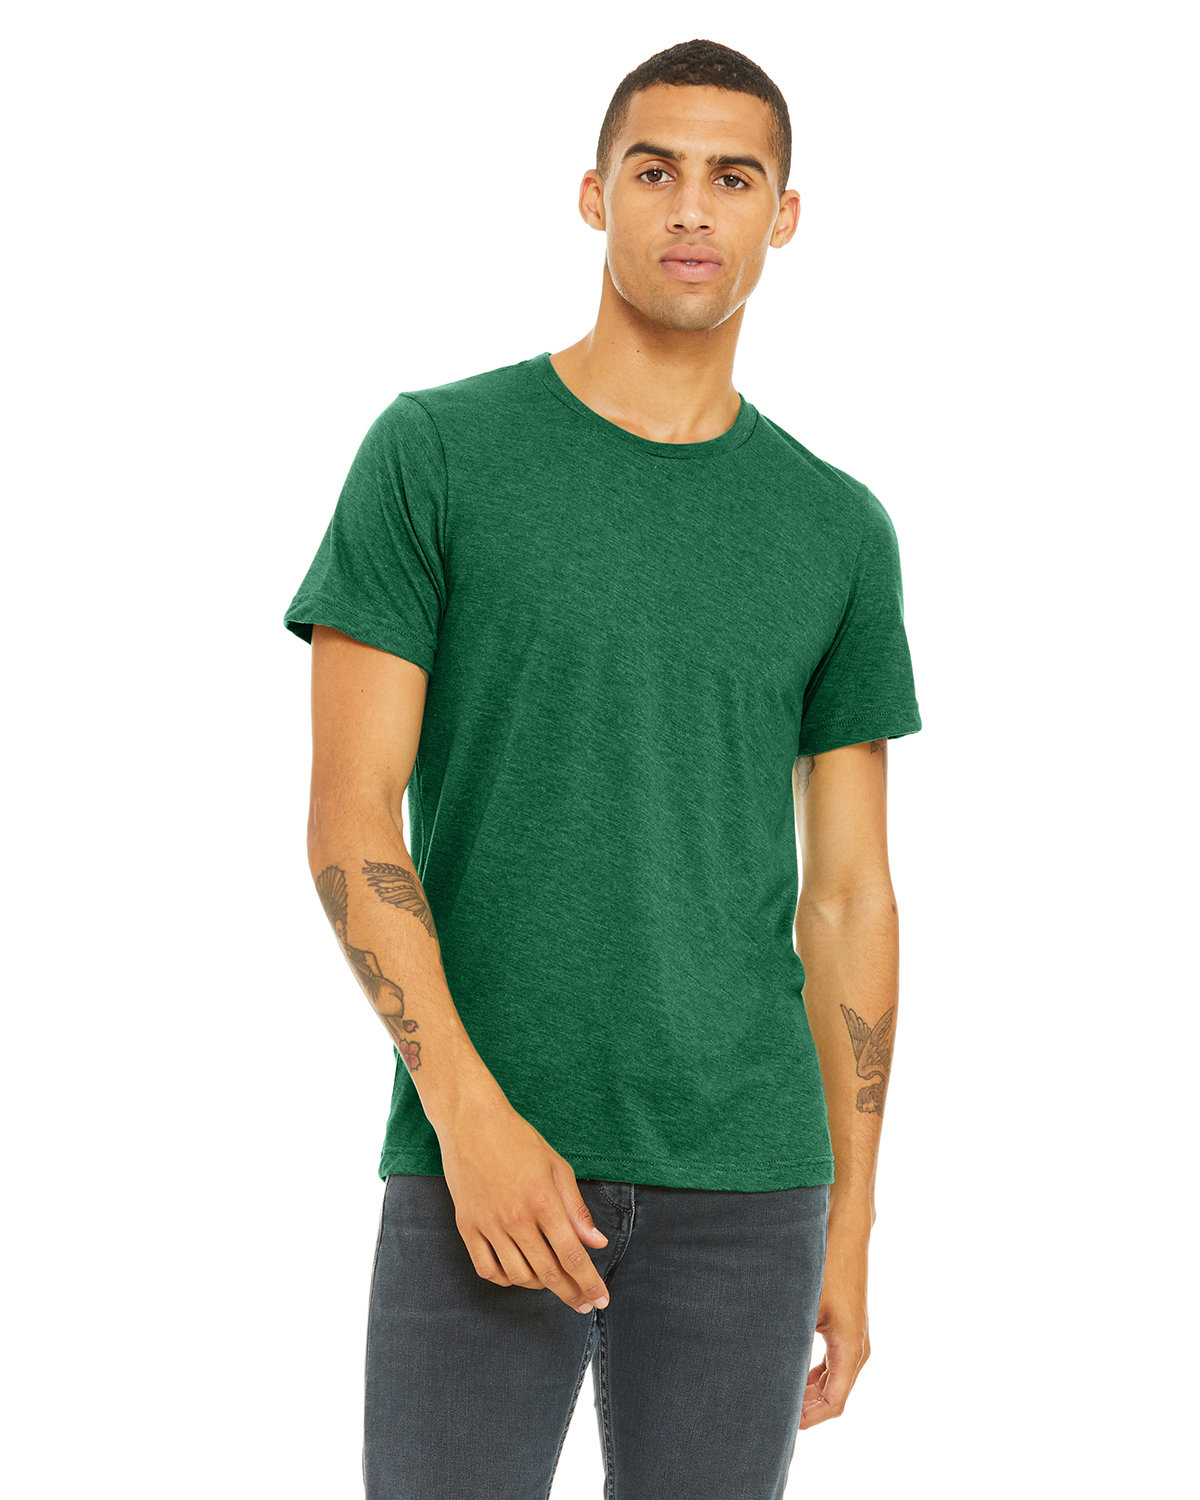 Bella + Canvas Unisex Heather CVC T-Shirt HTHR GRASS GREEN